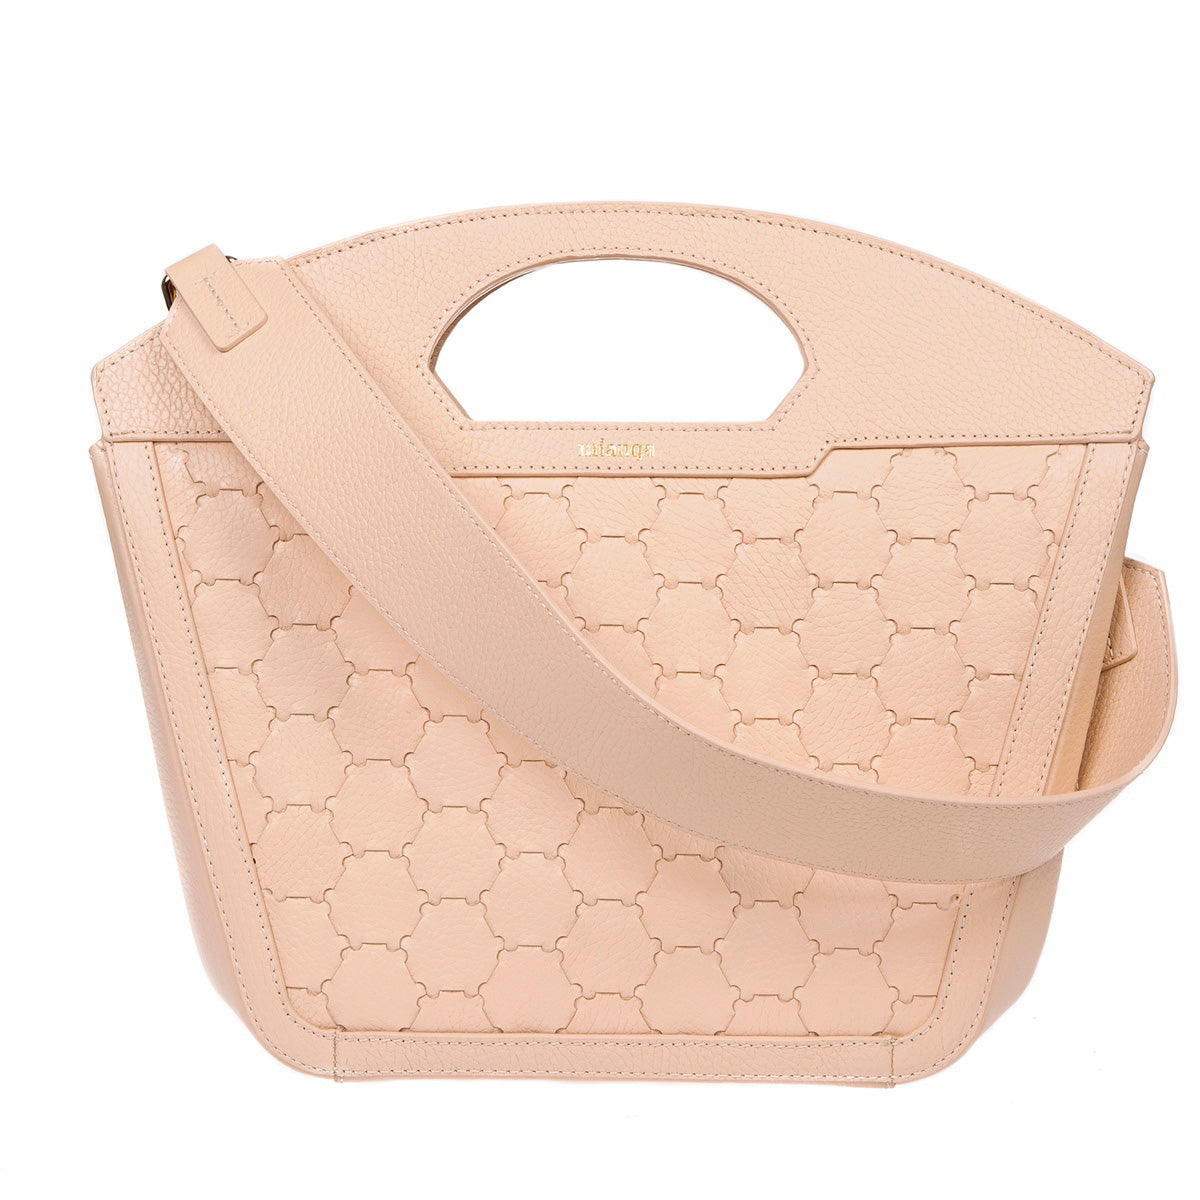 A F I F E | Leather Tote Bag Dust Pink